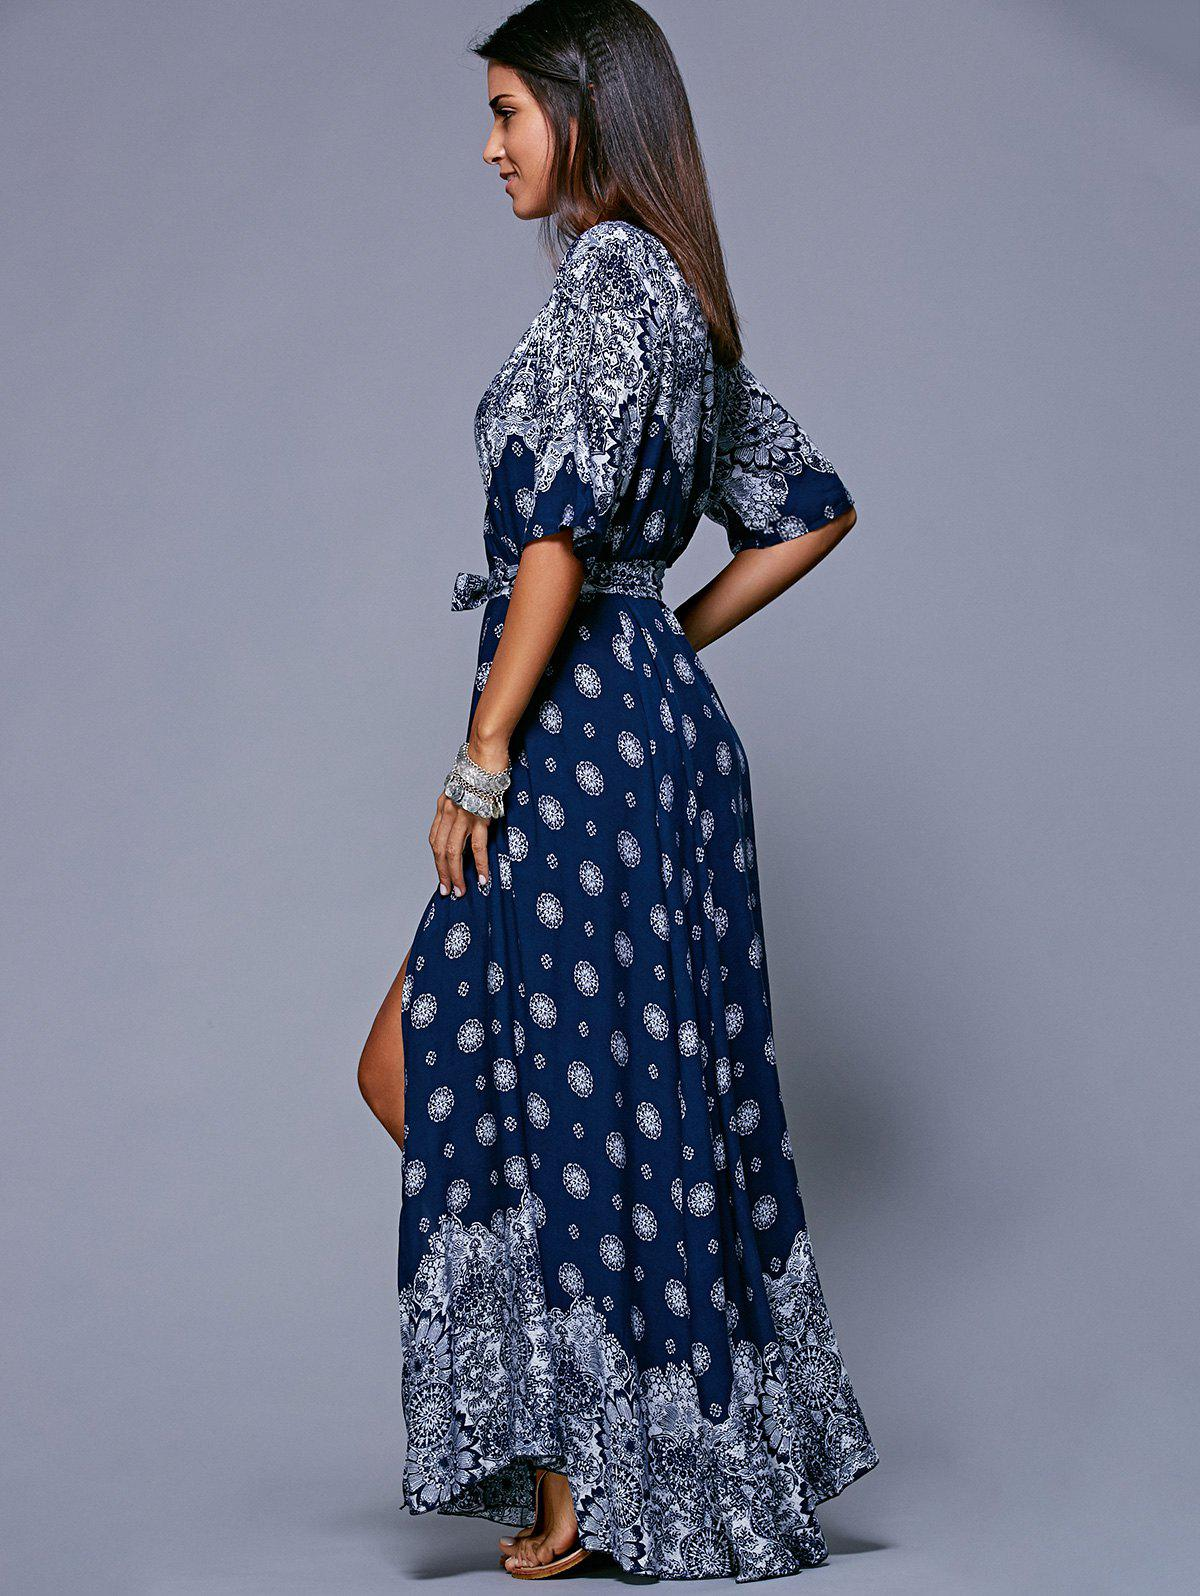 Slit Print Long Flowing Wrap Plunge Dress - PURPLISH BLUE ONE SIZE(FIT SIZE XS TO M)